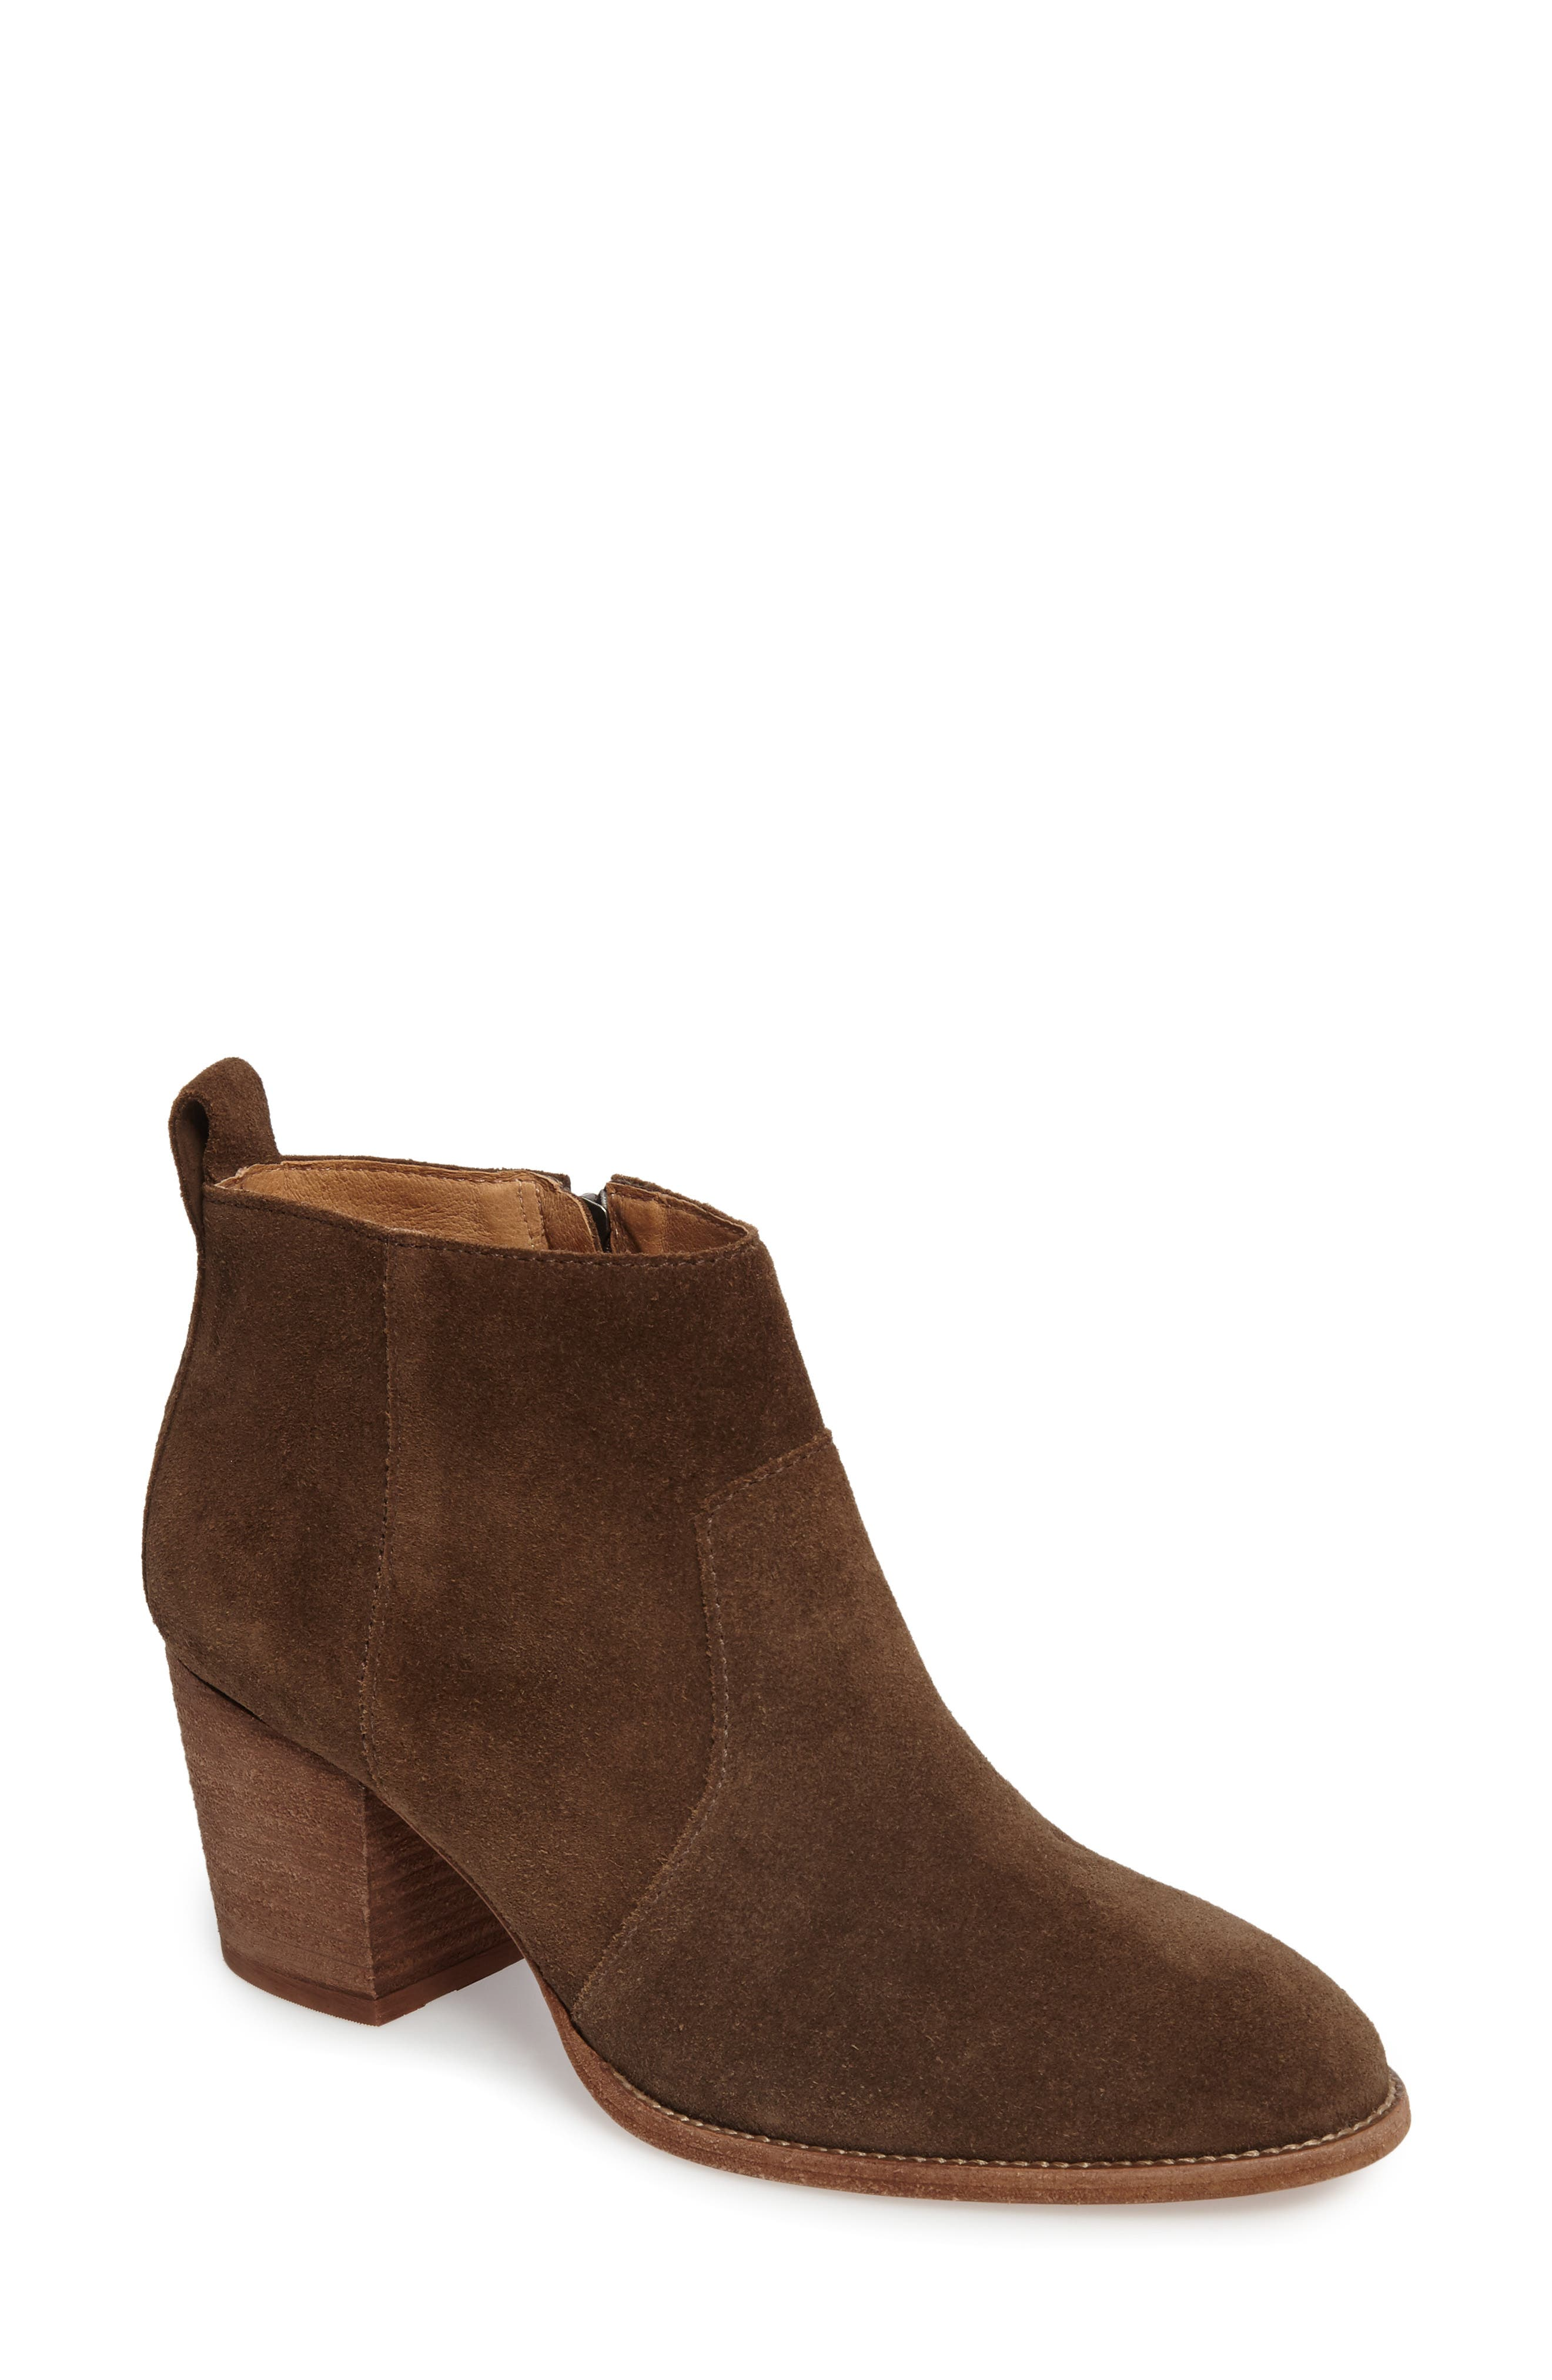 Brenner Bootie,                             Main thumbnail 1, color,                             Mink Suede